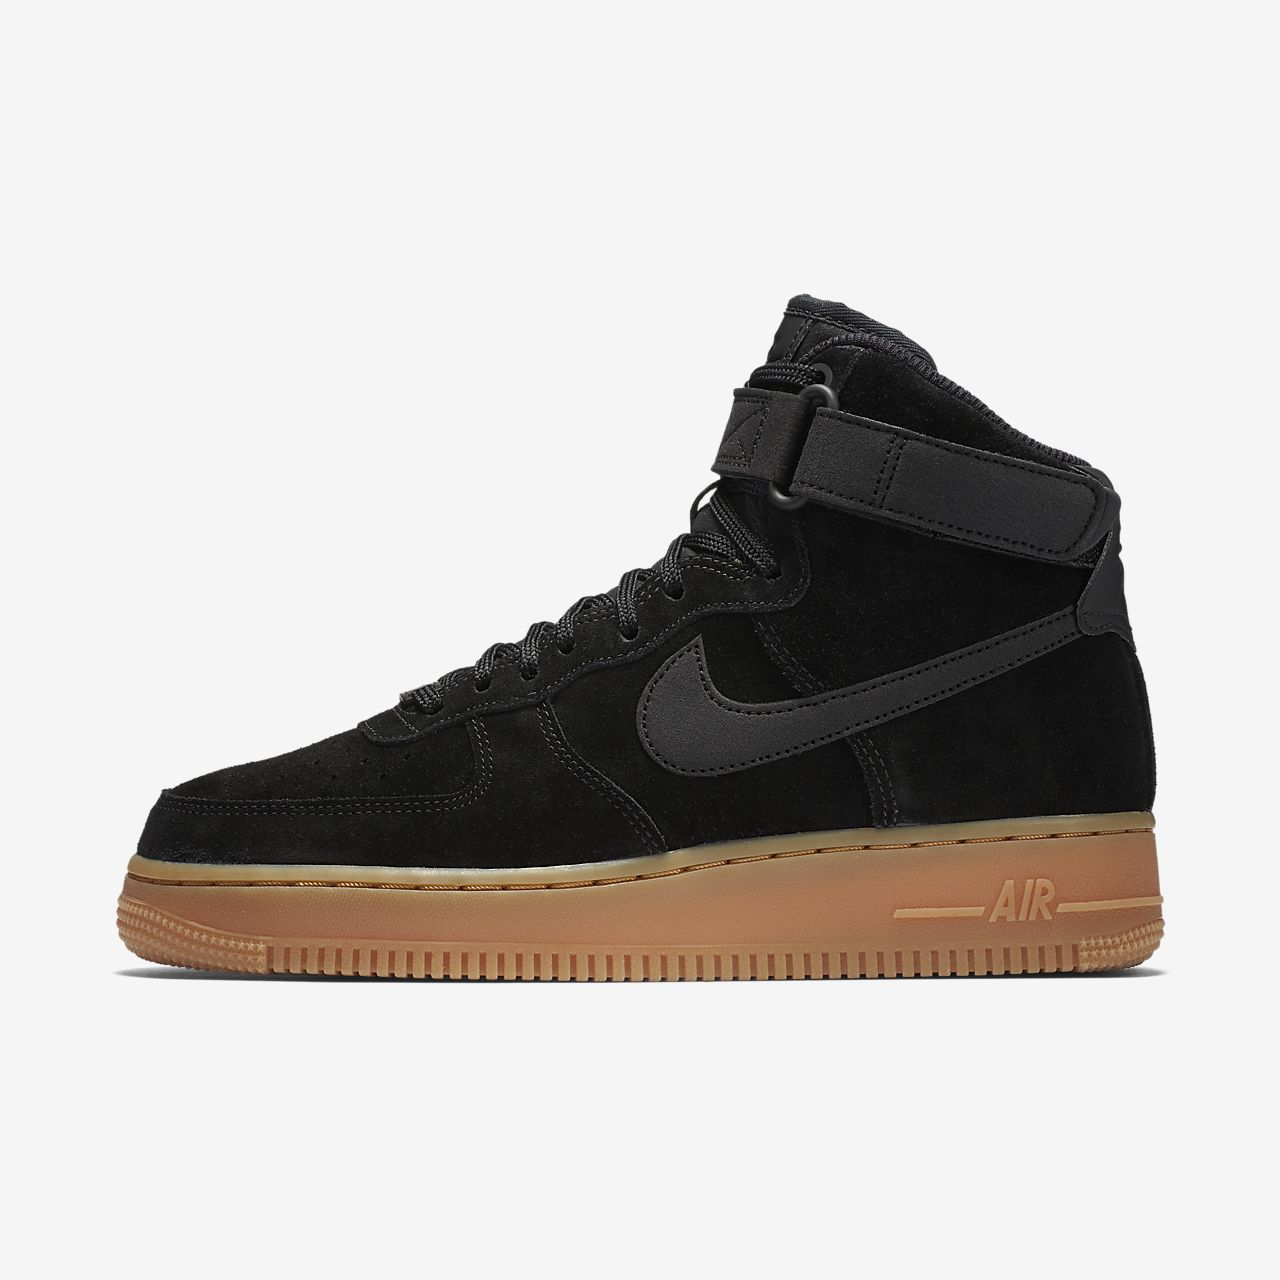 air force 1 high nz